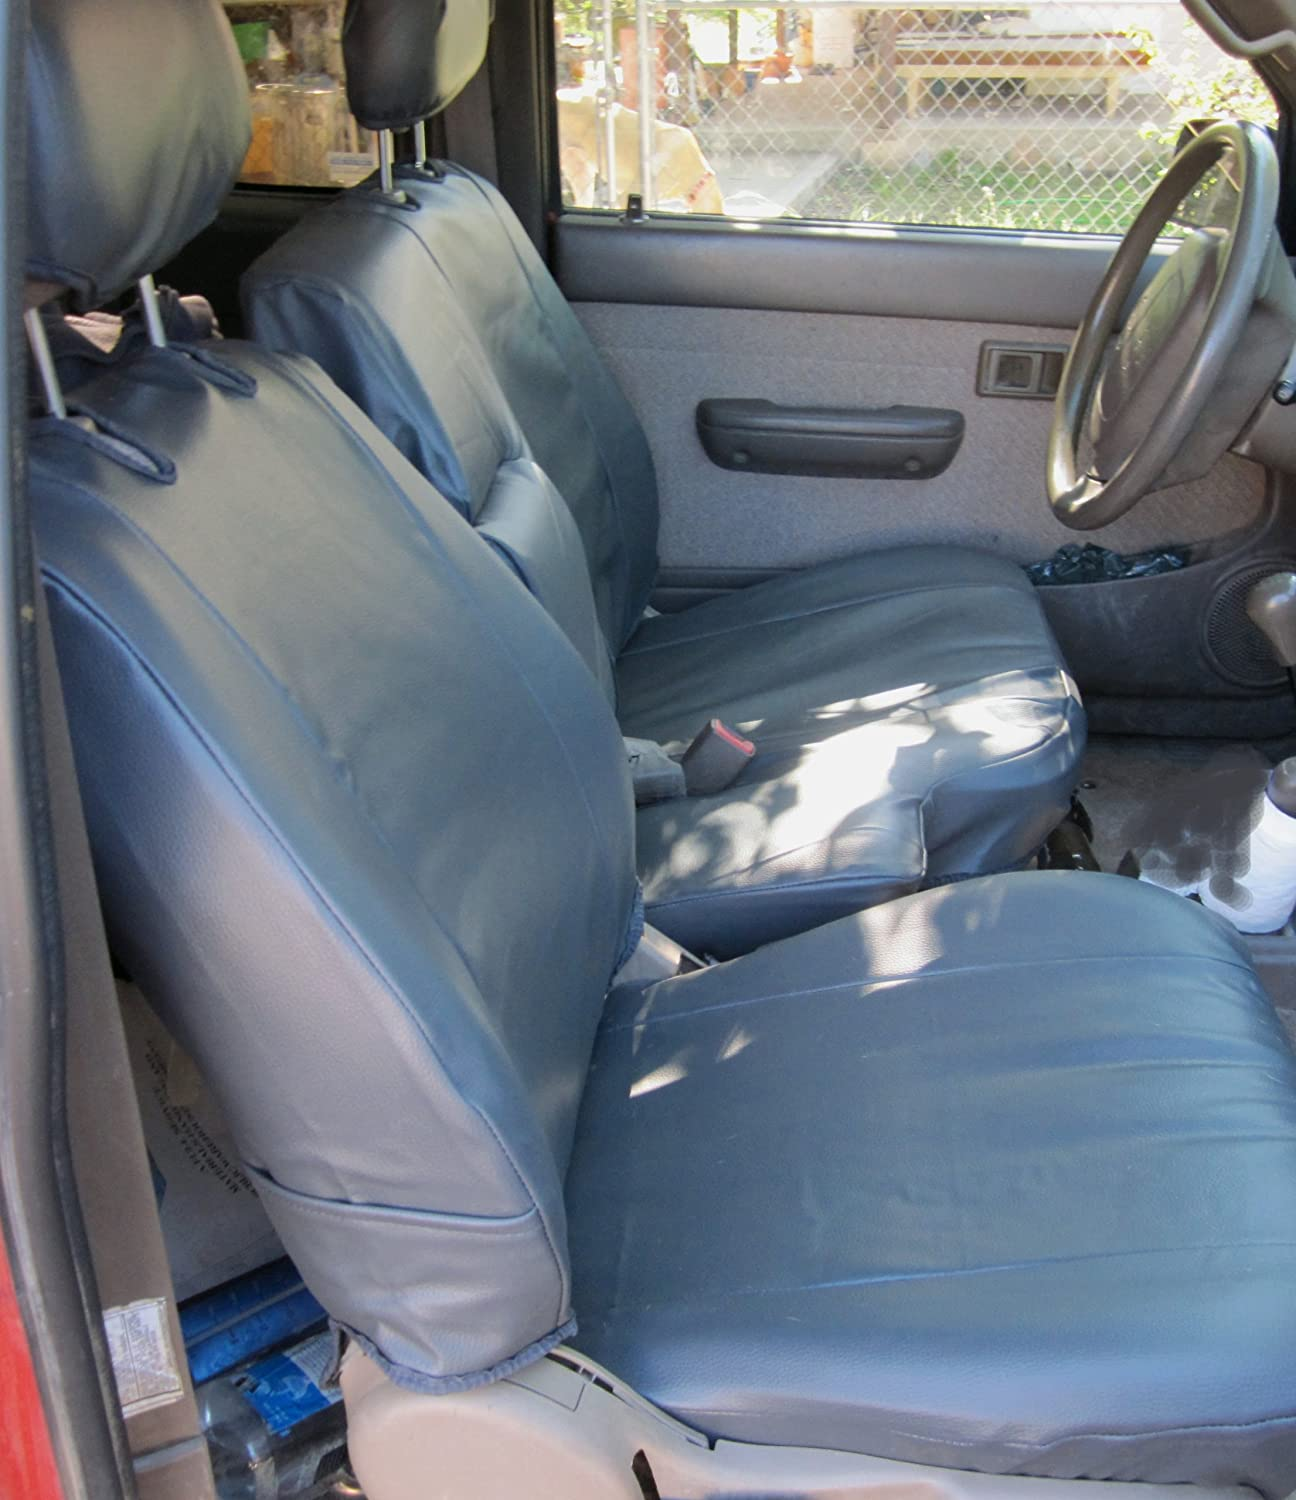 2004 Toyota Tacoma Seat Covers: 1997 Toyota Tacoma Bench Seat Covers